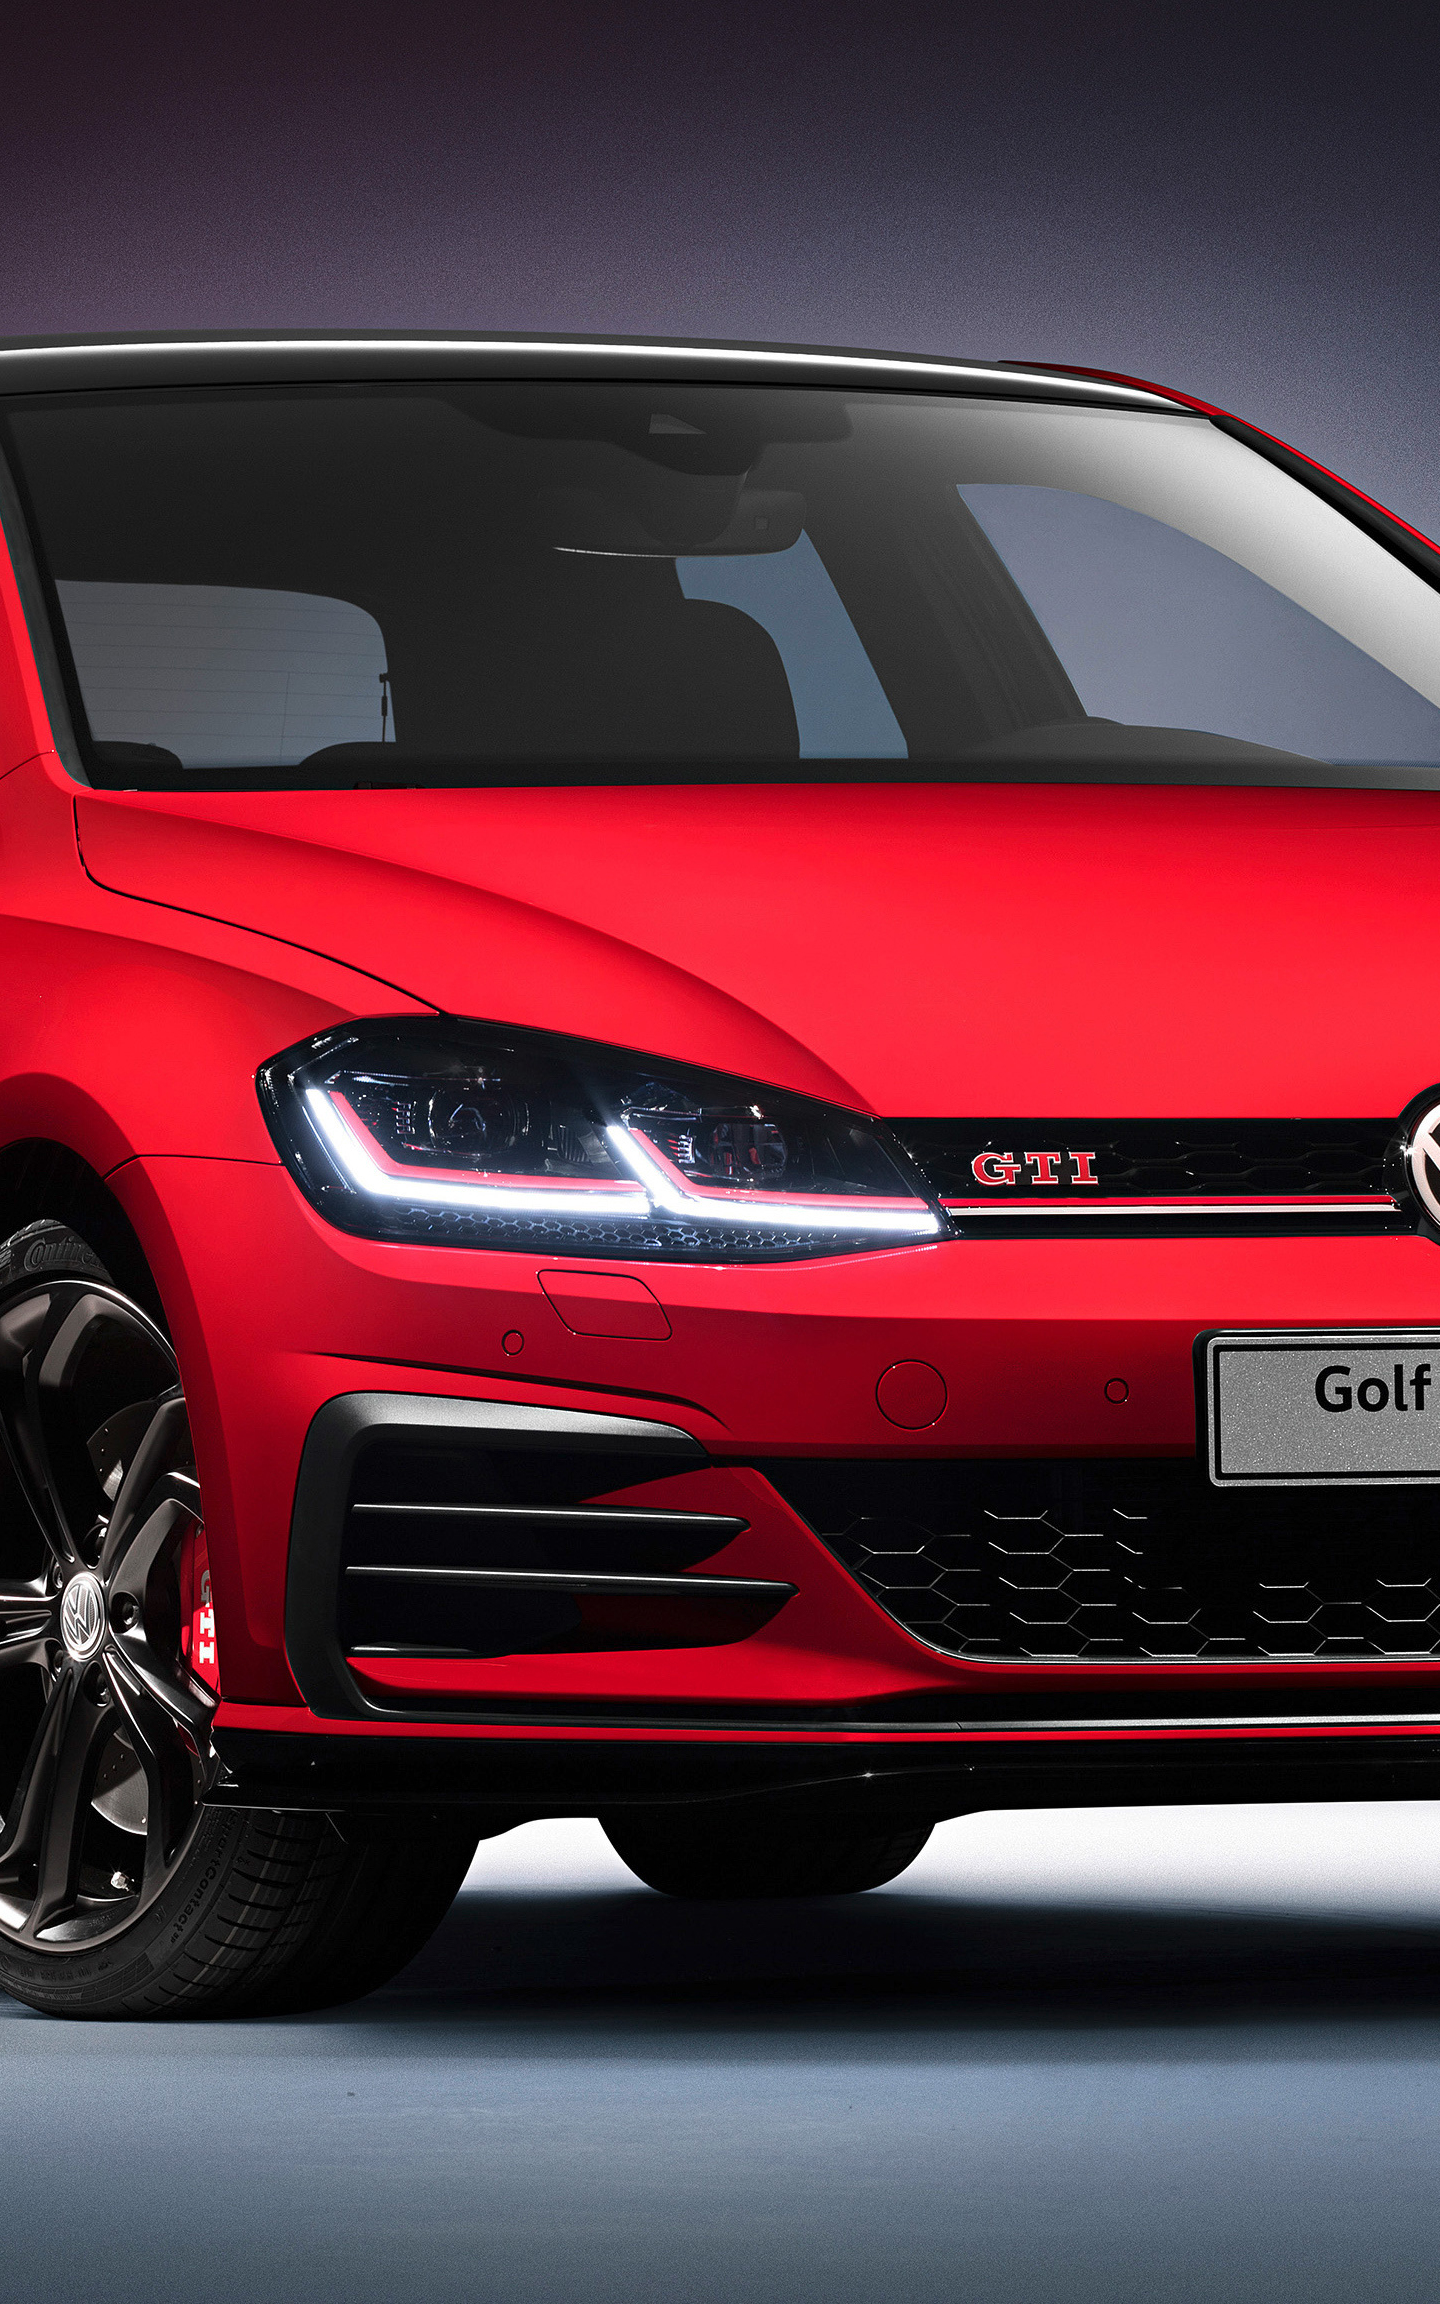 Download 1440x2560 Wallpaper Volkswagen Golf Gti Tcr Concept Red Compact Car 2018 Qhd Samsung Galaxy S6 S7 Edge Note Lg G4 1440x2560 Hd Image Background 7621